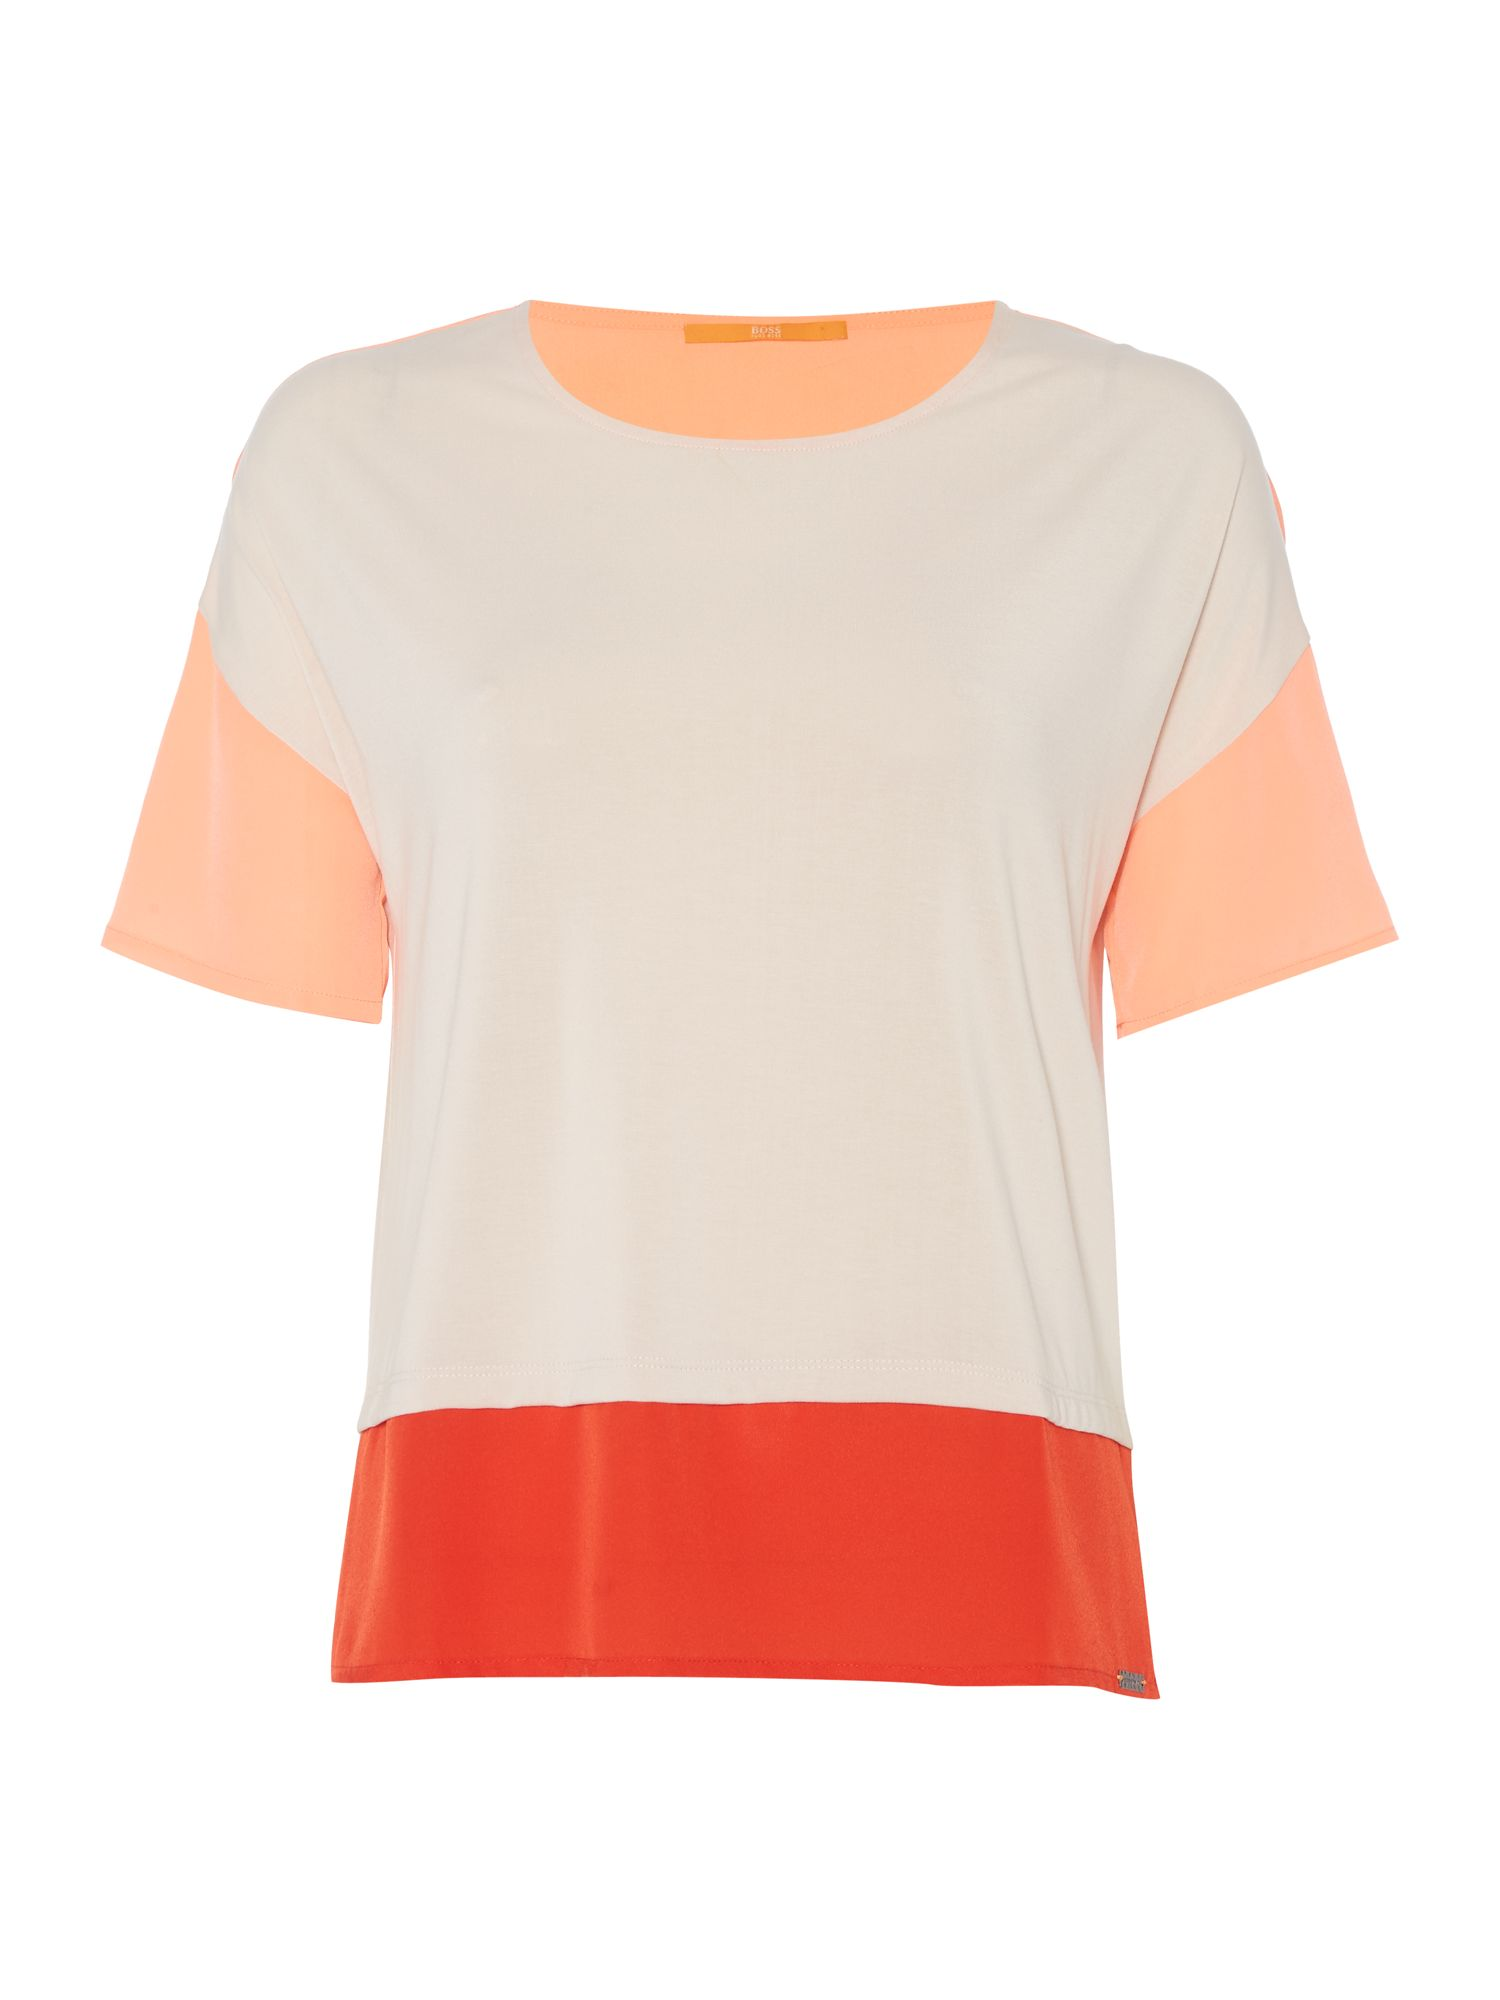 Hugo Boss Tustripe block colour tee in light pink, Pink